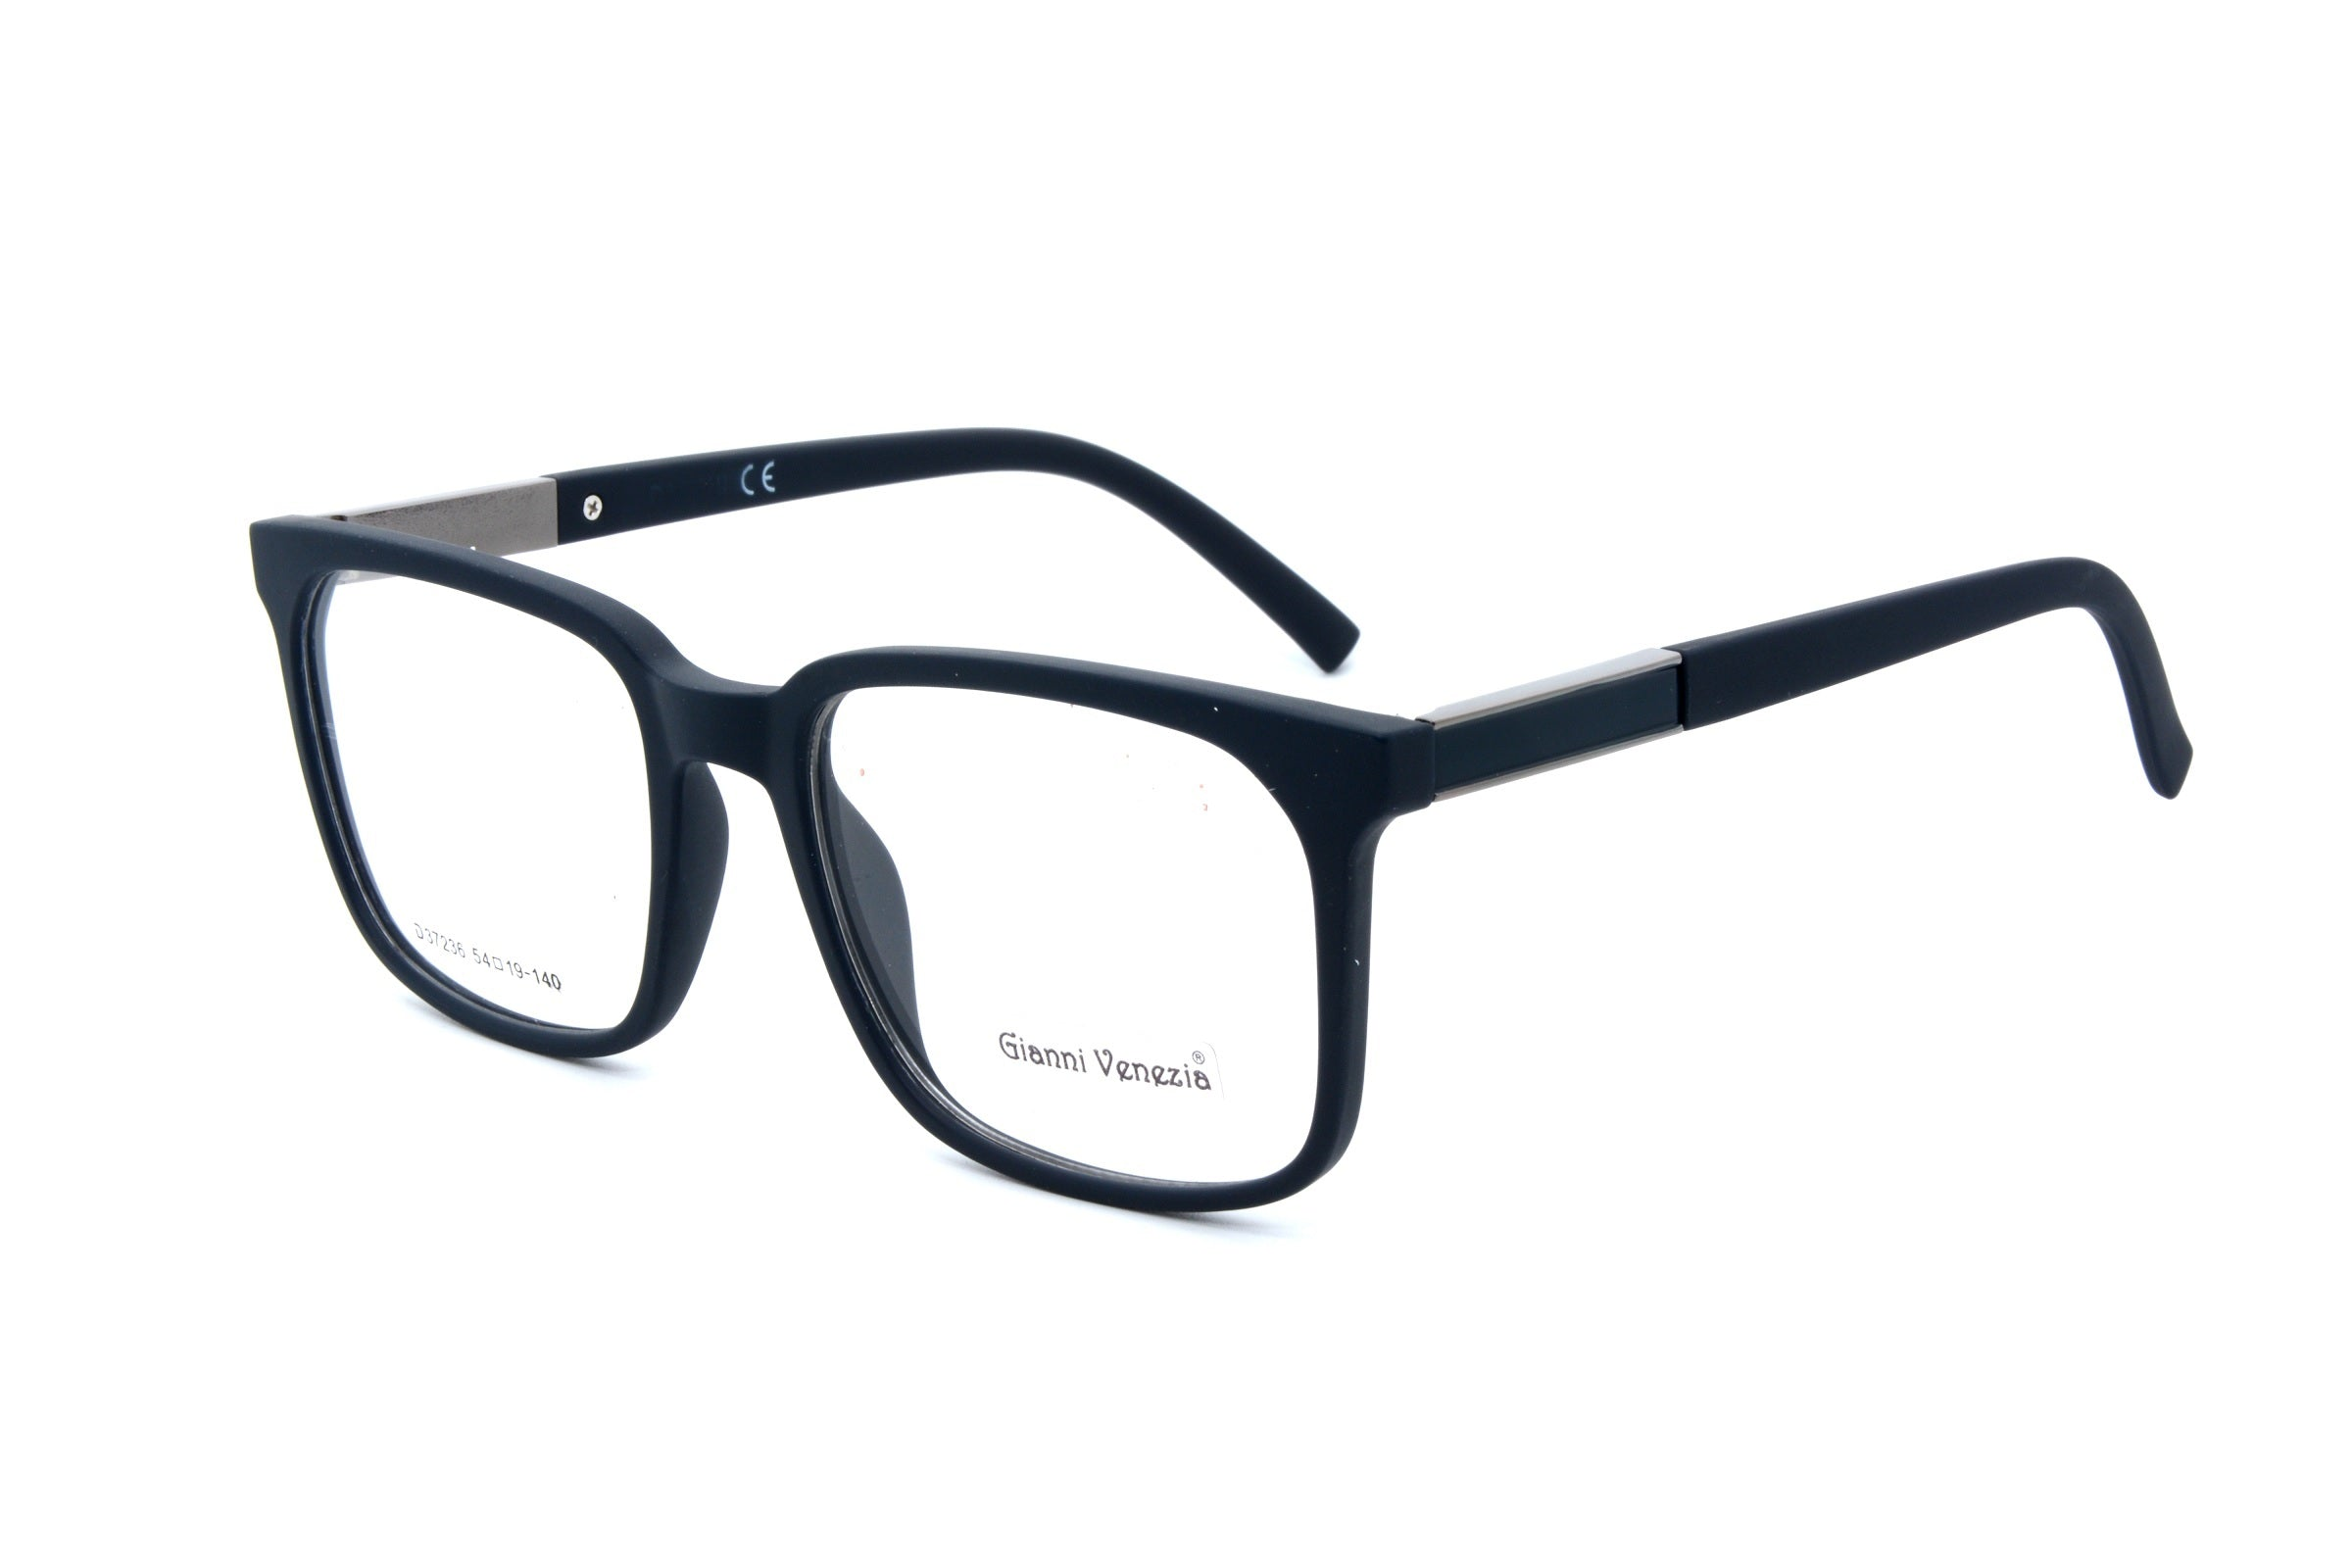 Gianni Venezia eyewear 37236, C3 - Optics Trading